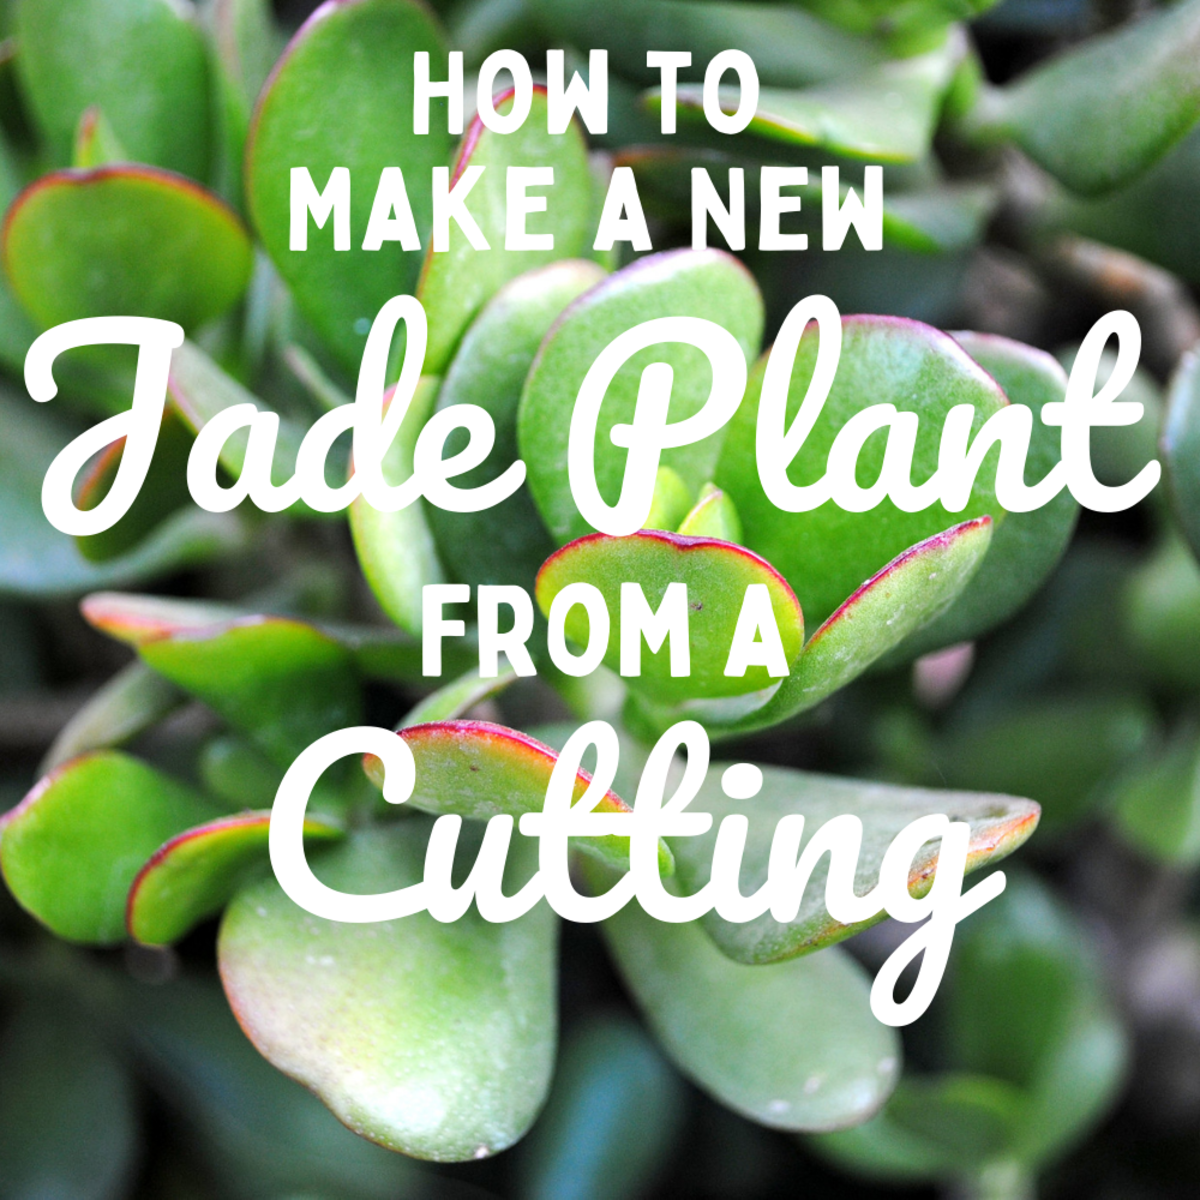 How to Make a New Jade Plant From a Cutting